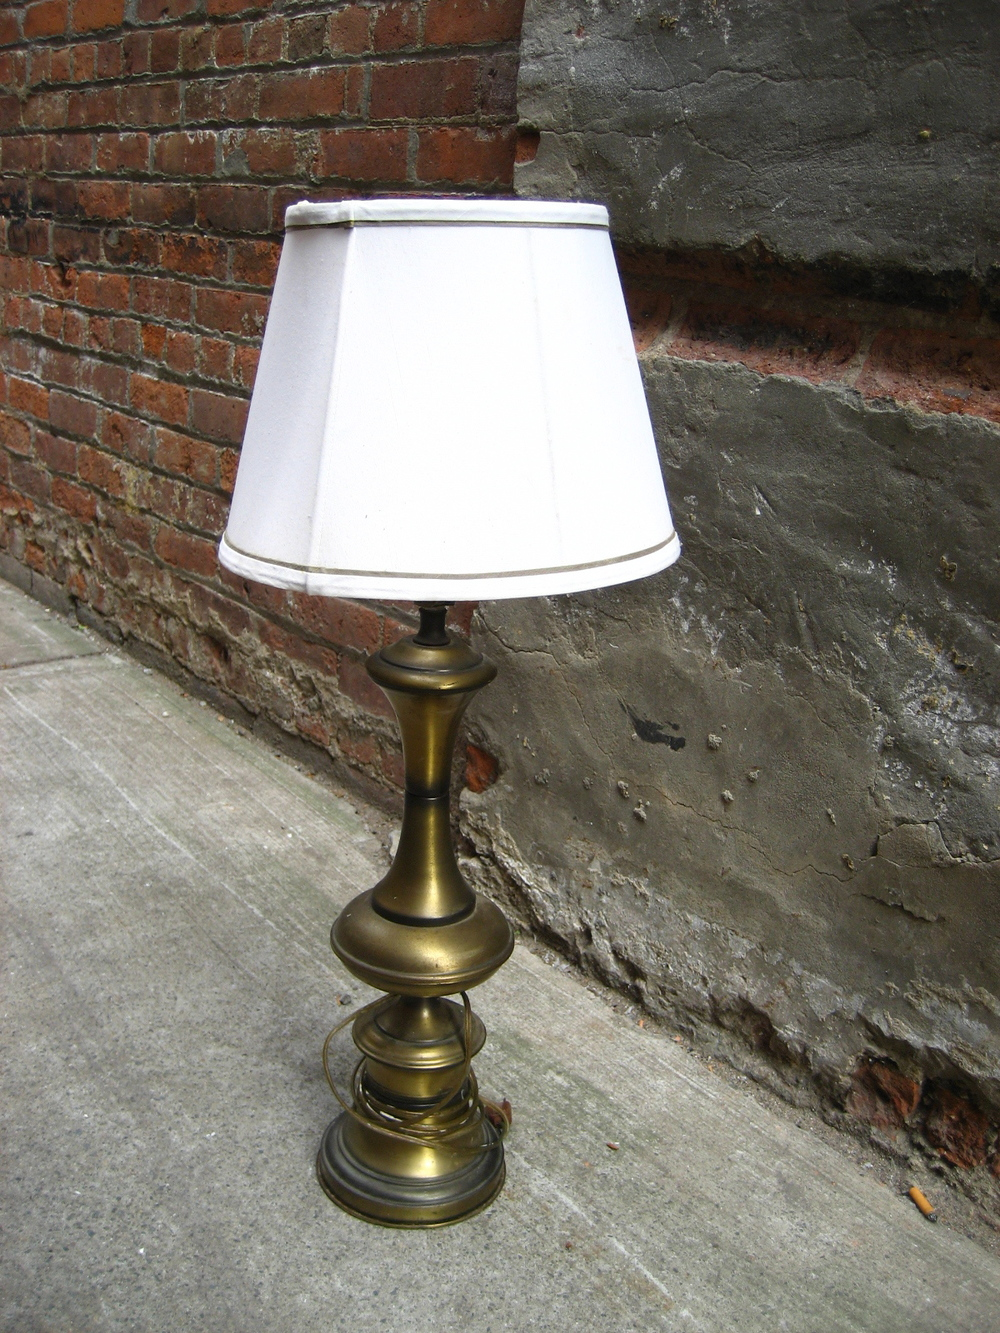 Brushed Metal Lamp w/White Shade $55